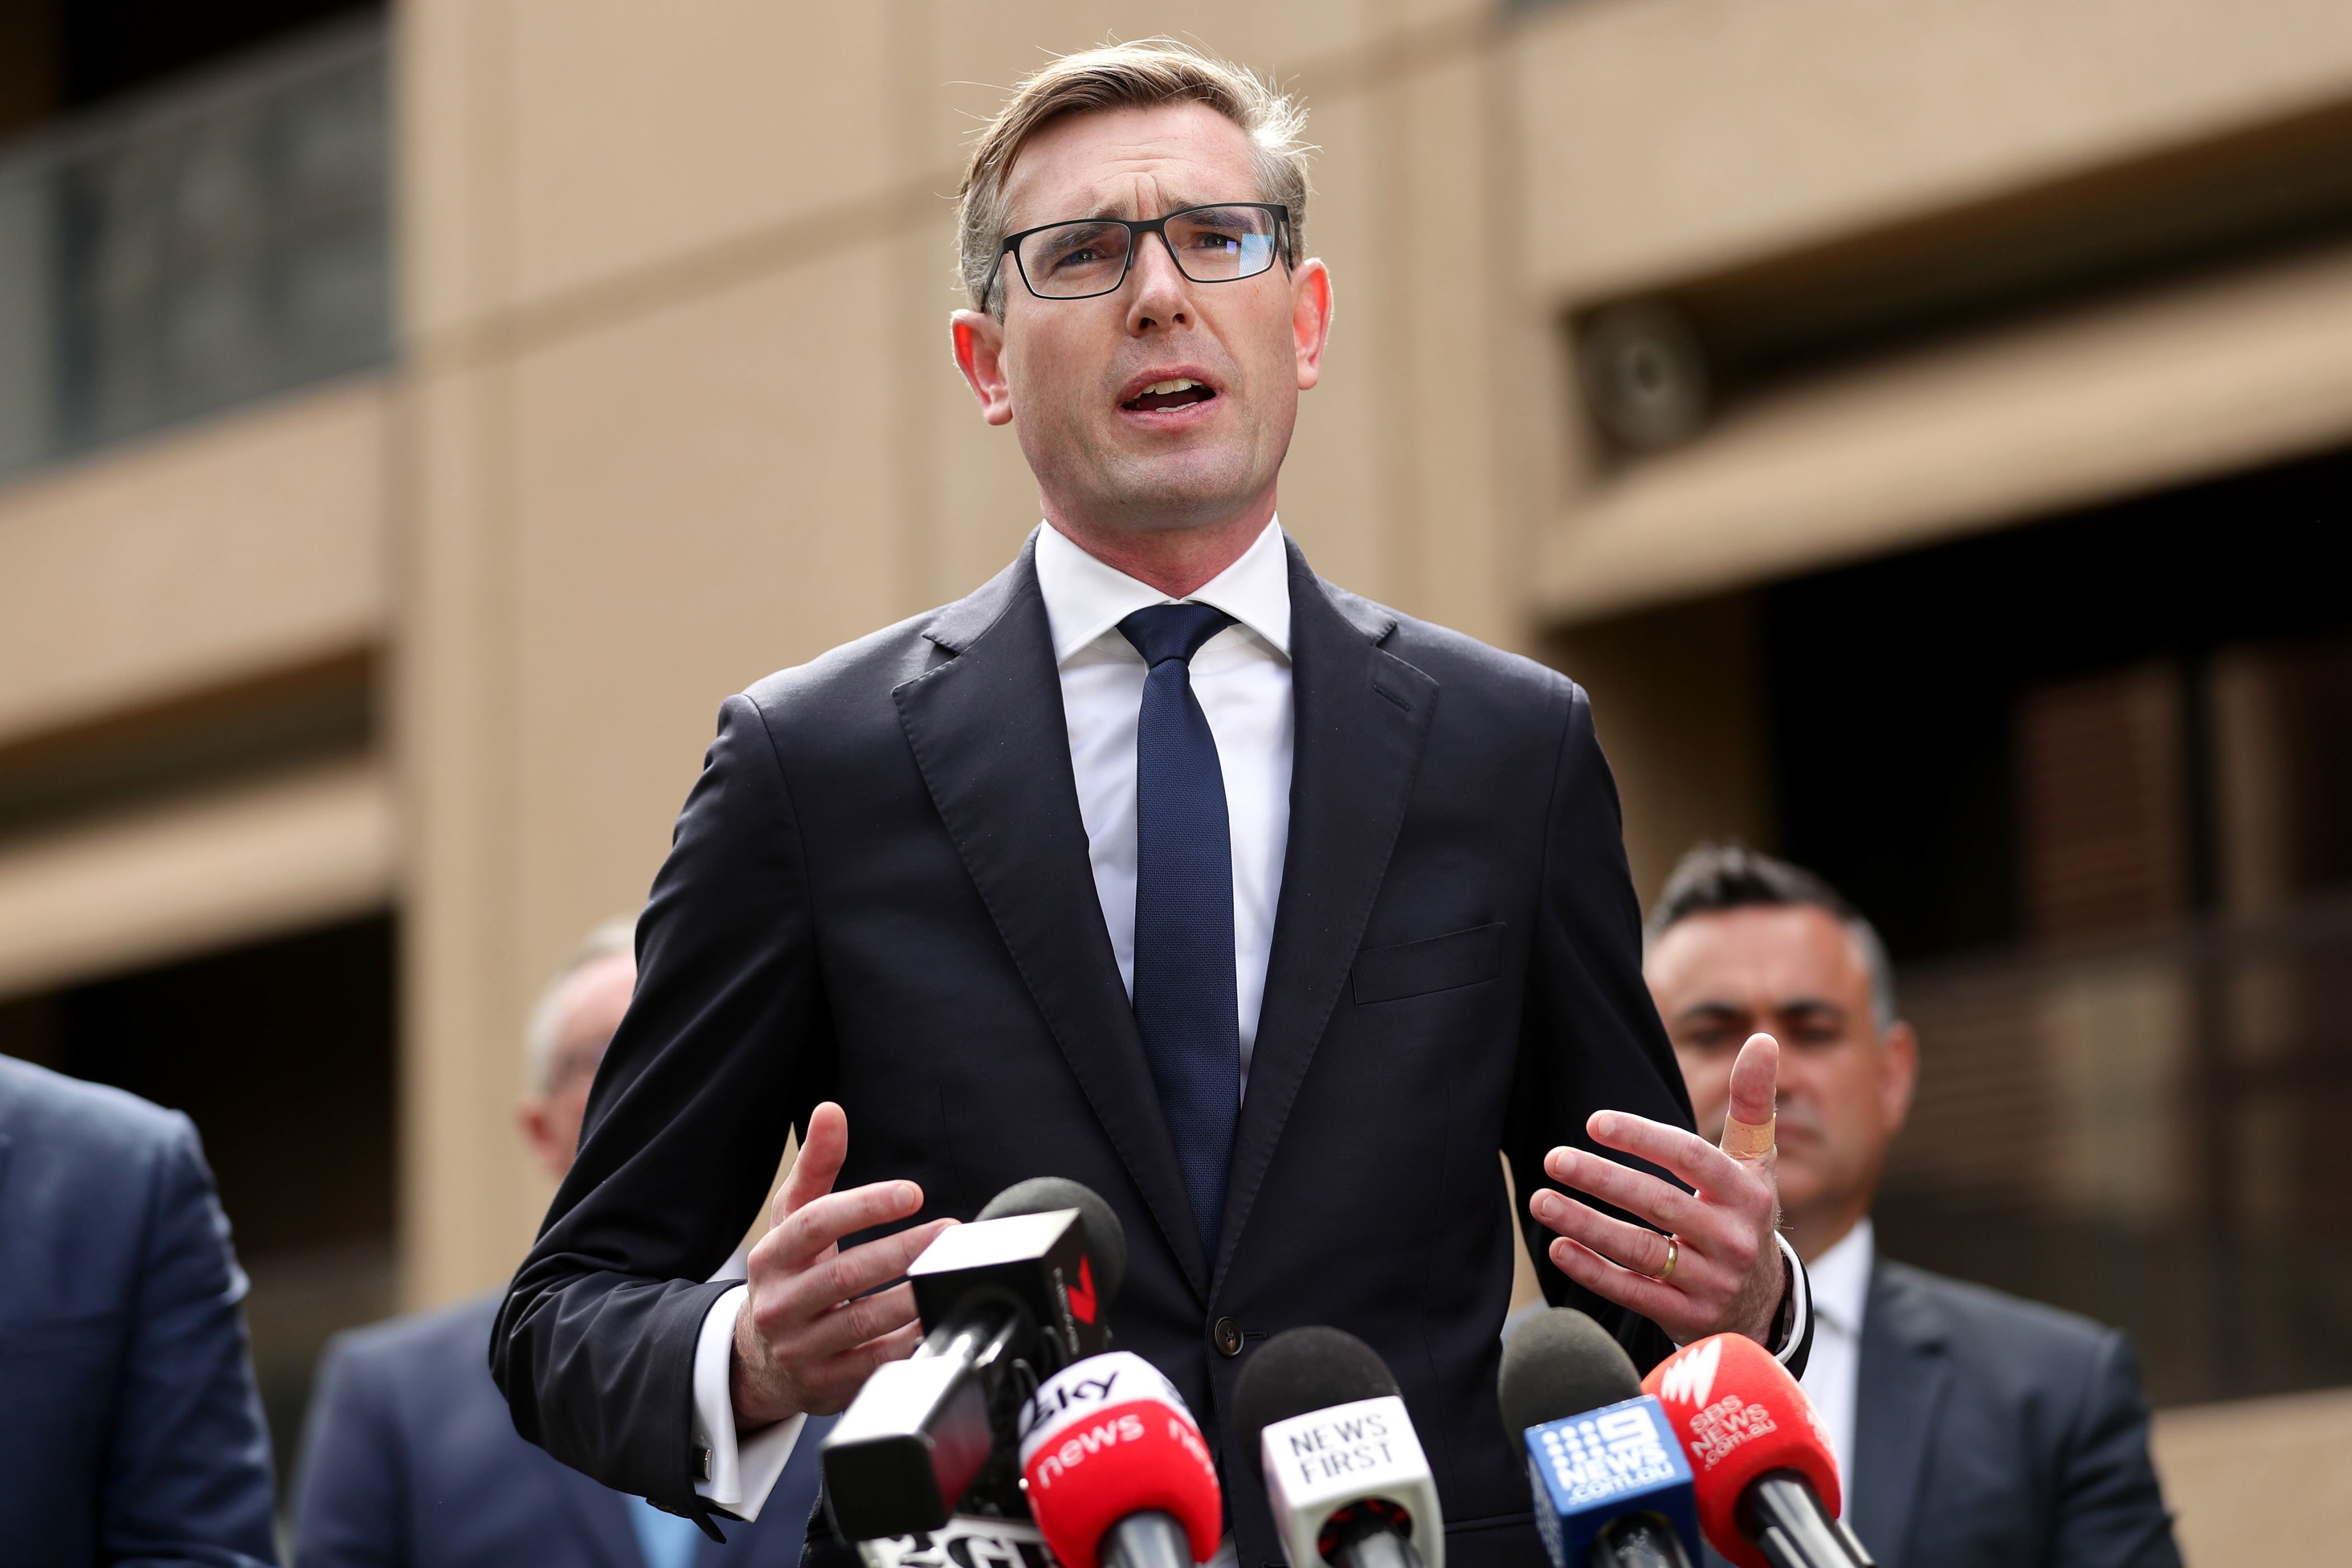 Nurses, paramedics, police to receive pay boost in NSW budget